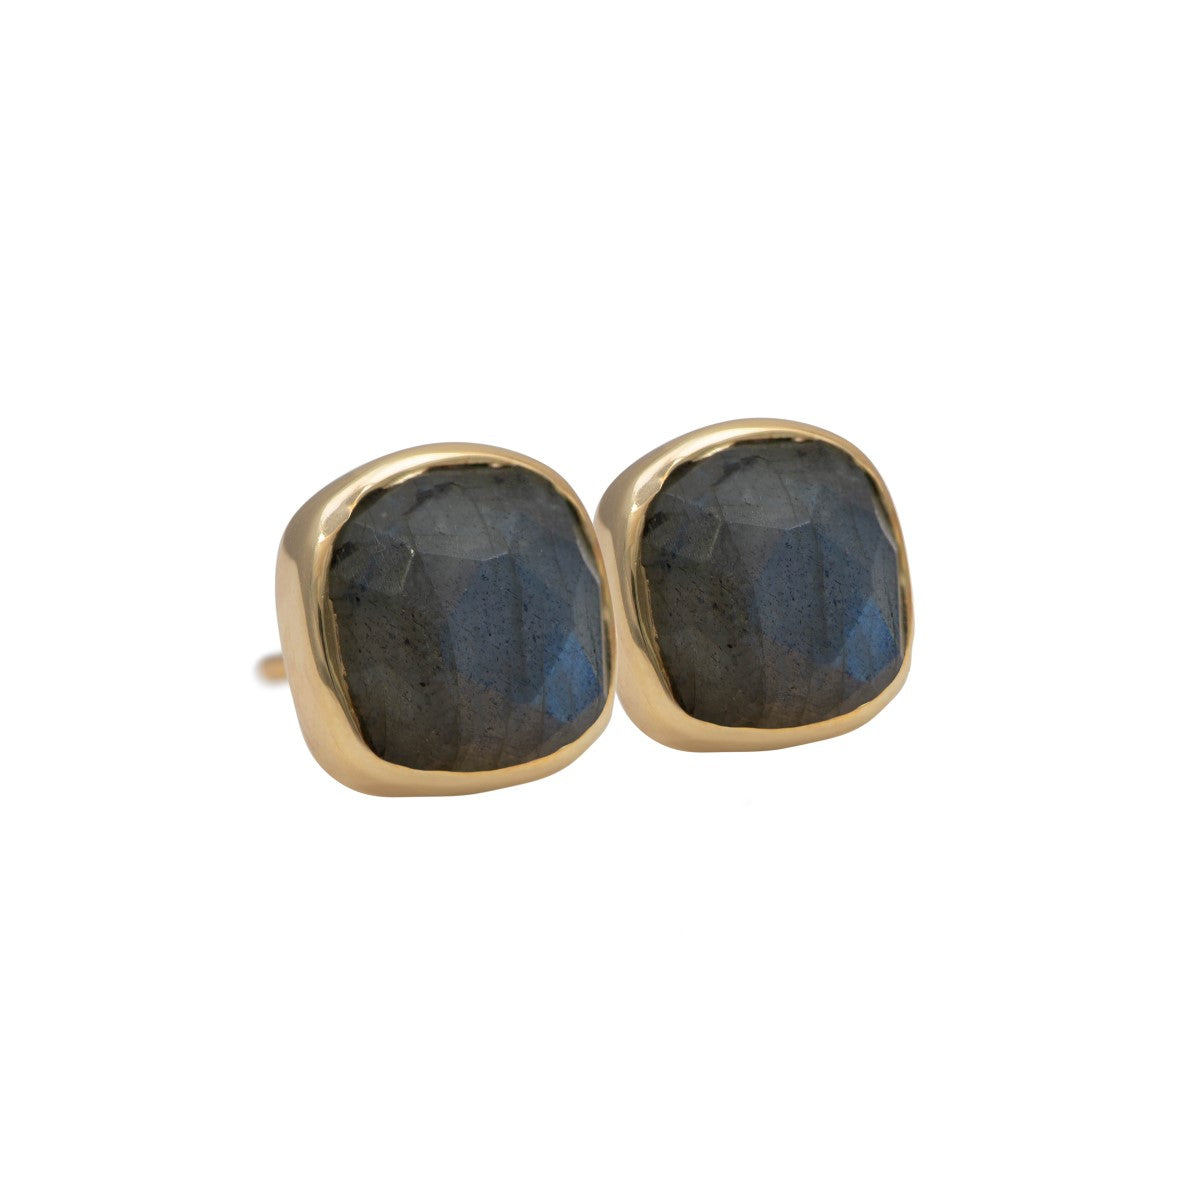 Faceted Square Labradorite Gemstone Stud Earrings in Gold Plated Sterling Silver